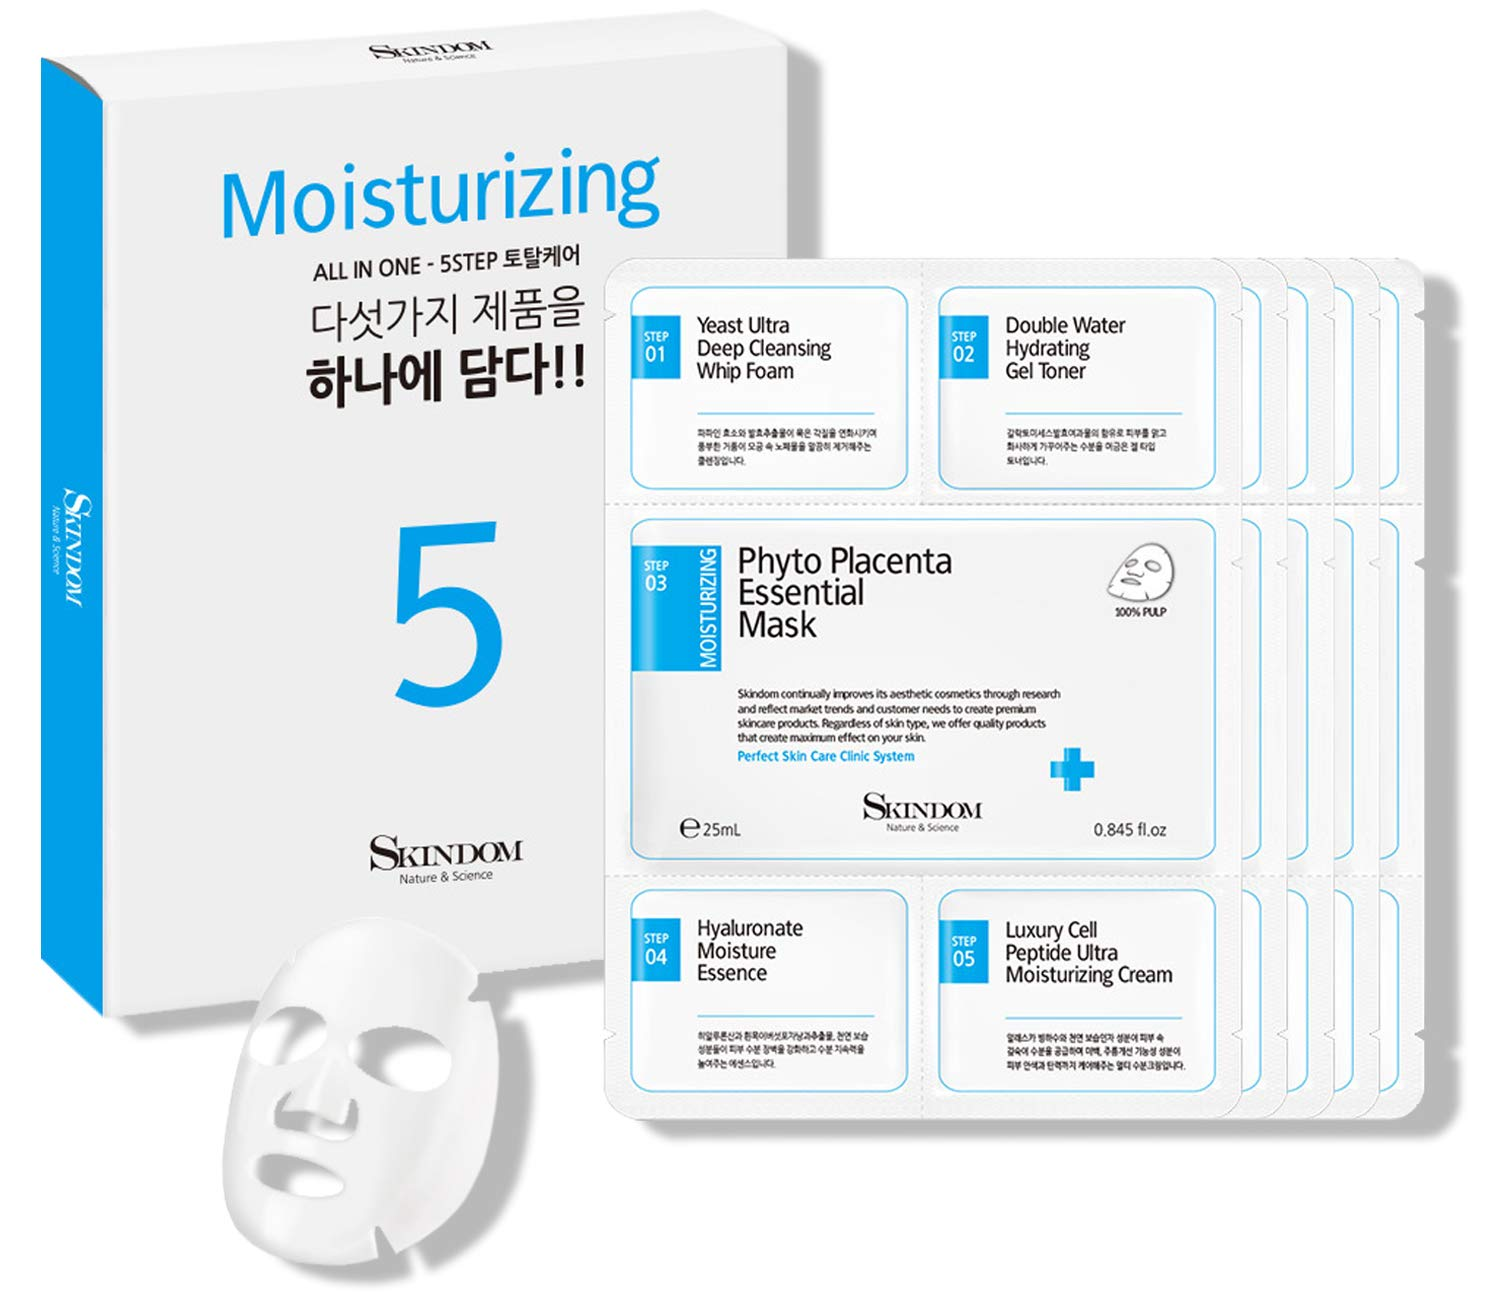 Skindom At Home Facial Kit Moisturizing Facial Sheet Mask Packed with Face Cleanser, Toner, Facial Sheet Mask, Essence, and Moisturizer Cream, Korean Skin Care Routine, 5 PACK